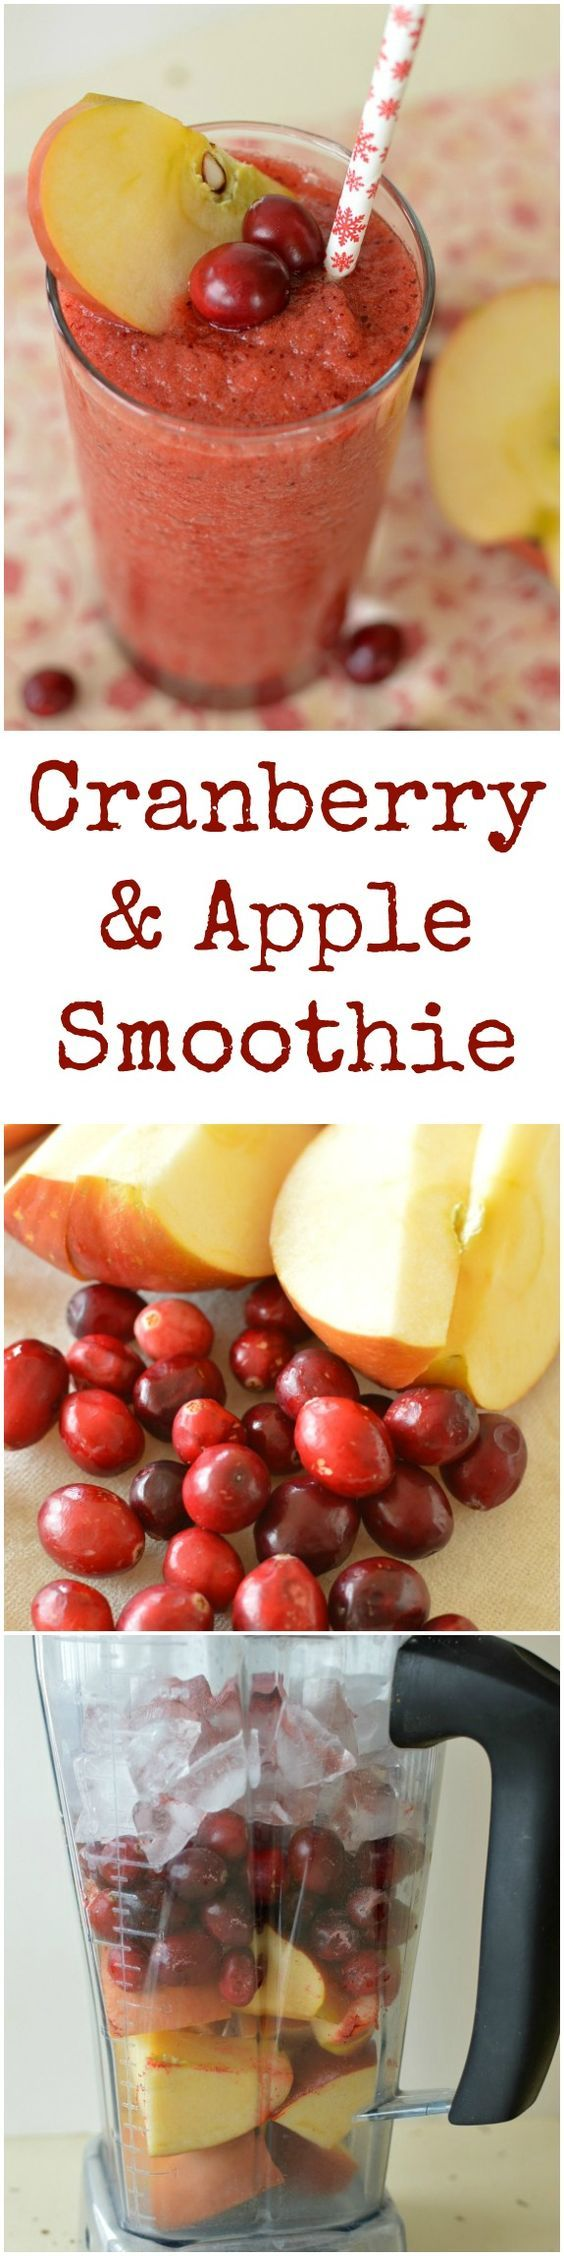 A refreshing, no sugar added, cranberry and apple smoothie! It's a healthy way to start the day or a perfect afternoon snack! Little Dairy on the Prairie